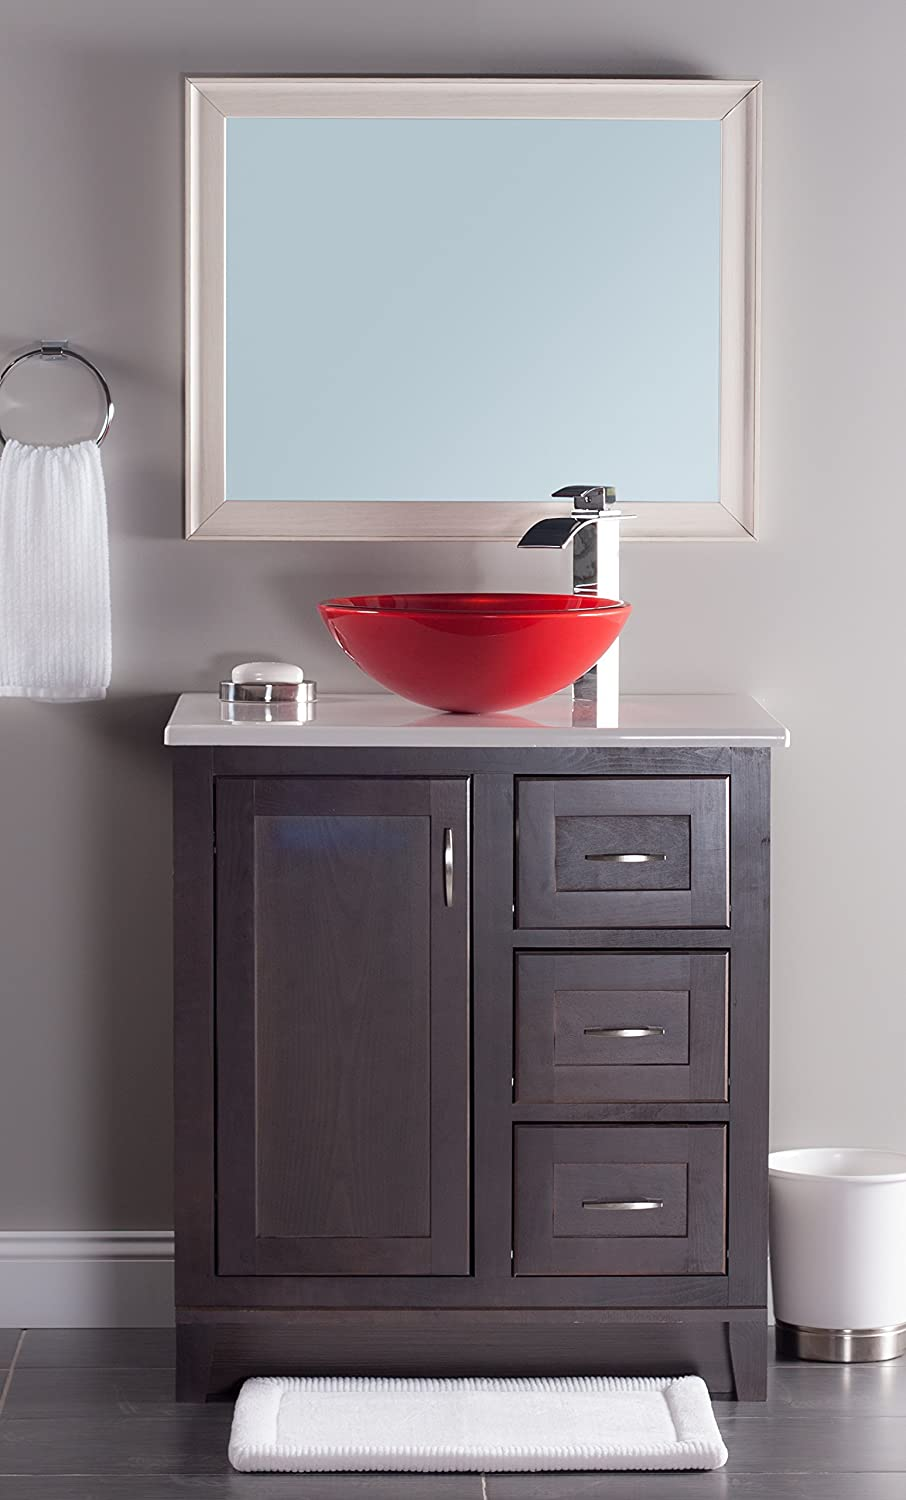 Novatto TIG-8305 16.5-Inch Diameter Round Double Layer Glass Vessel Sink Clear Red